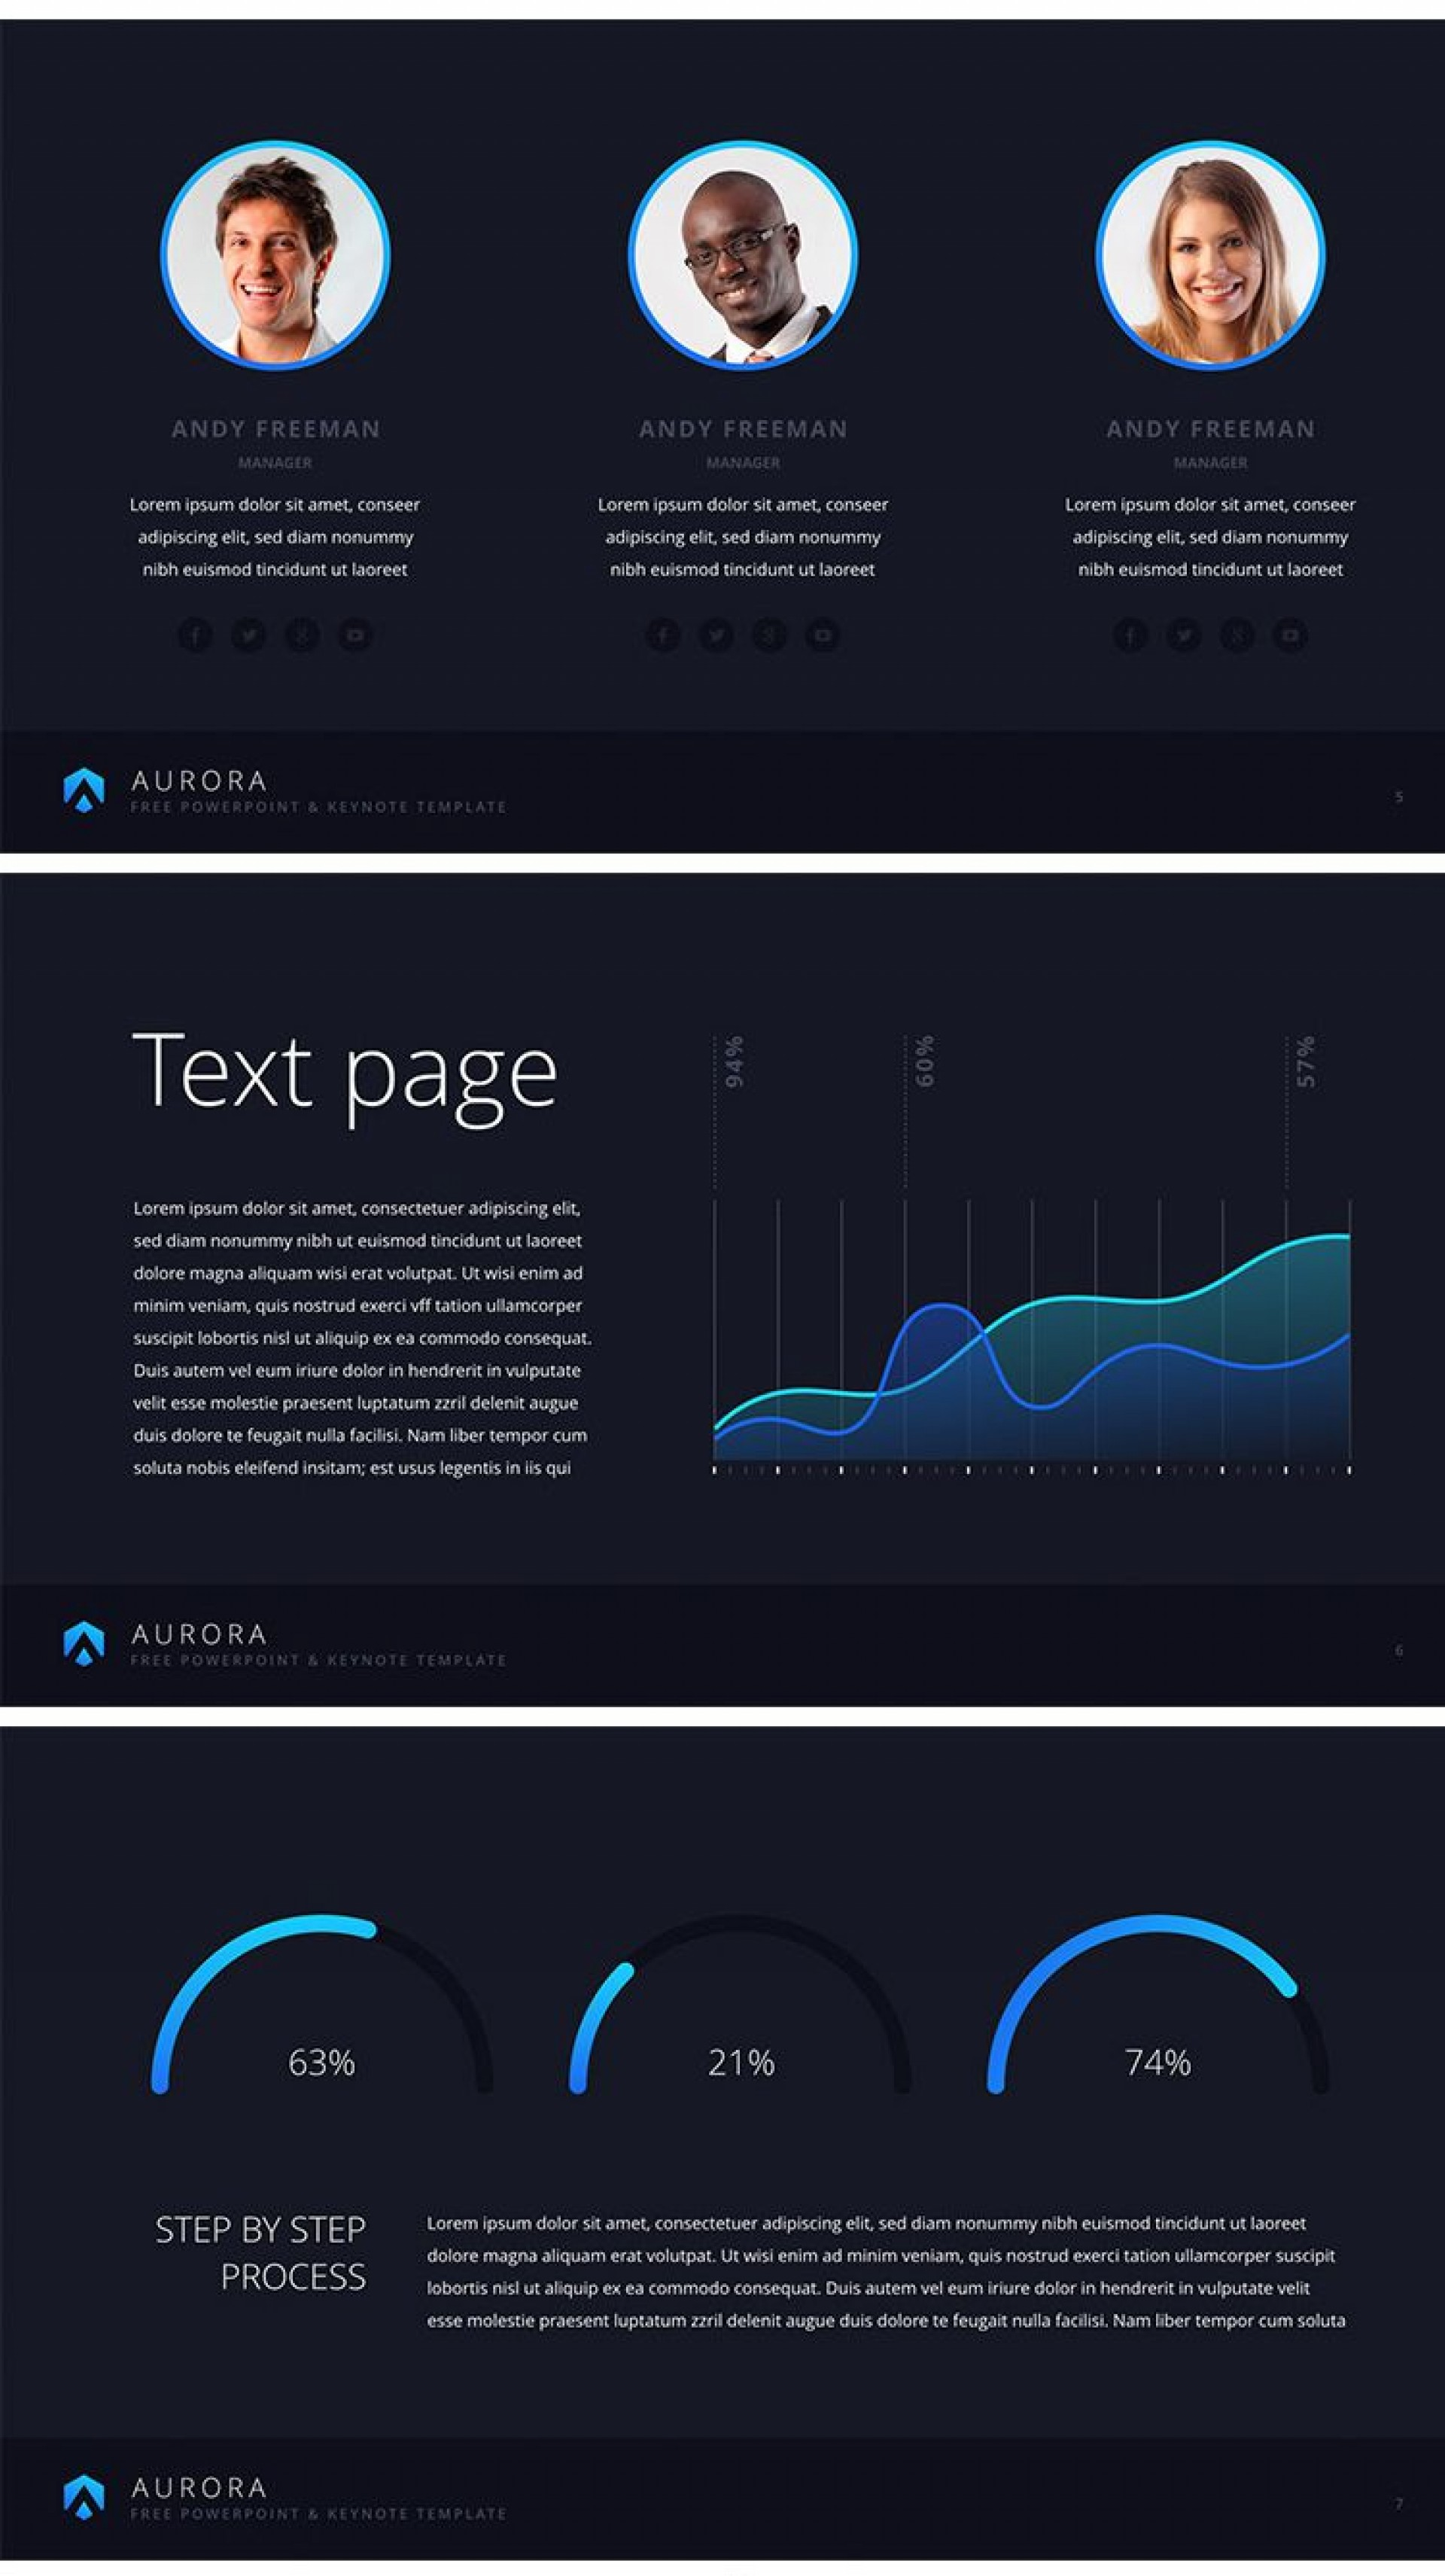 003 Impressive Social Media Trend 2017  Powerpoint Template Free High Definition -1920